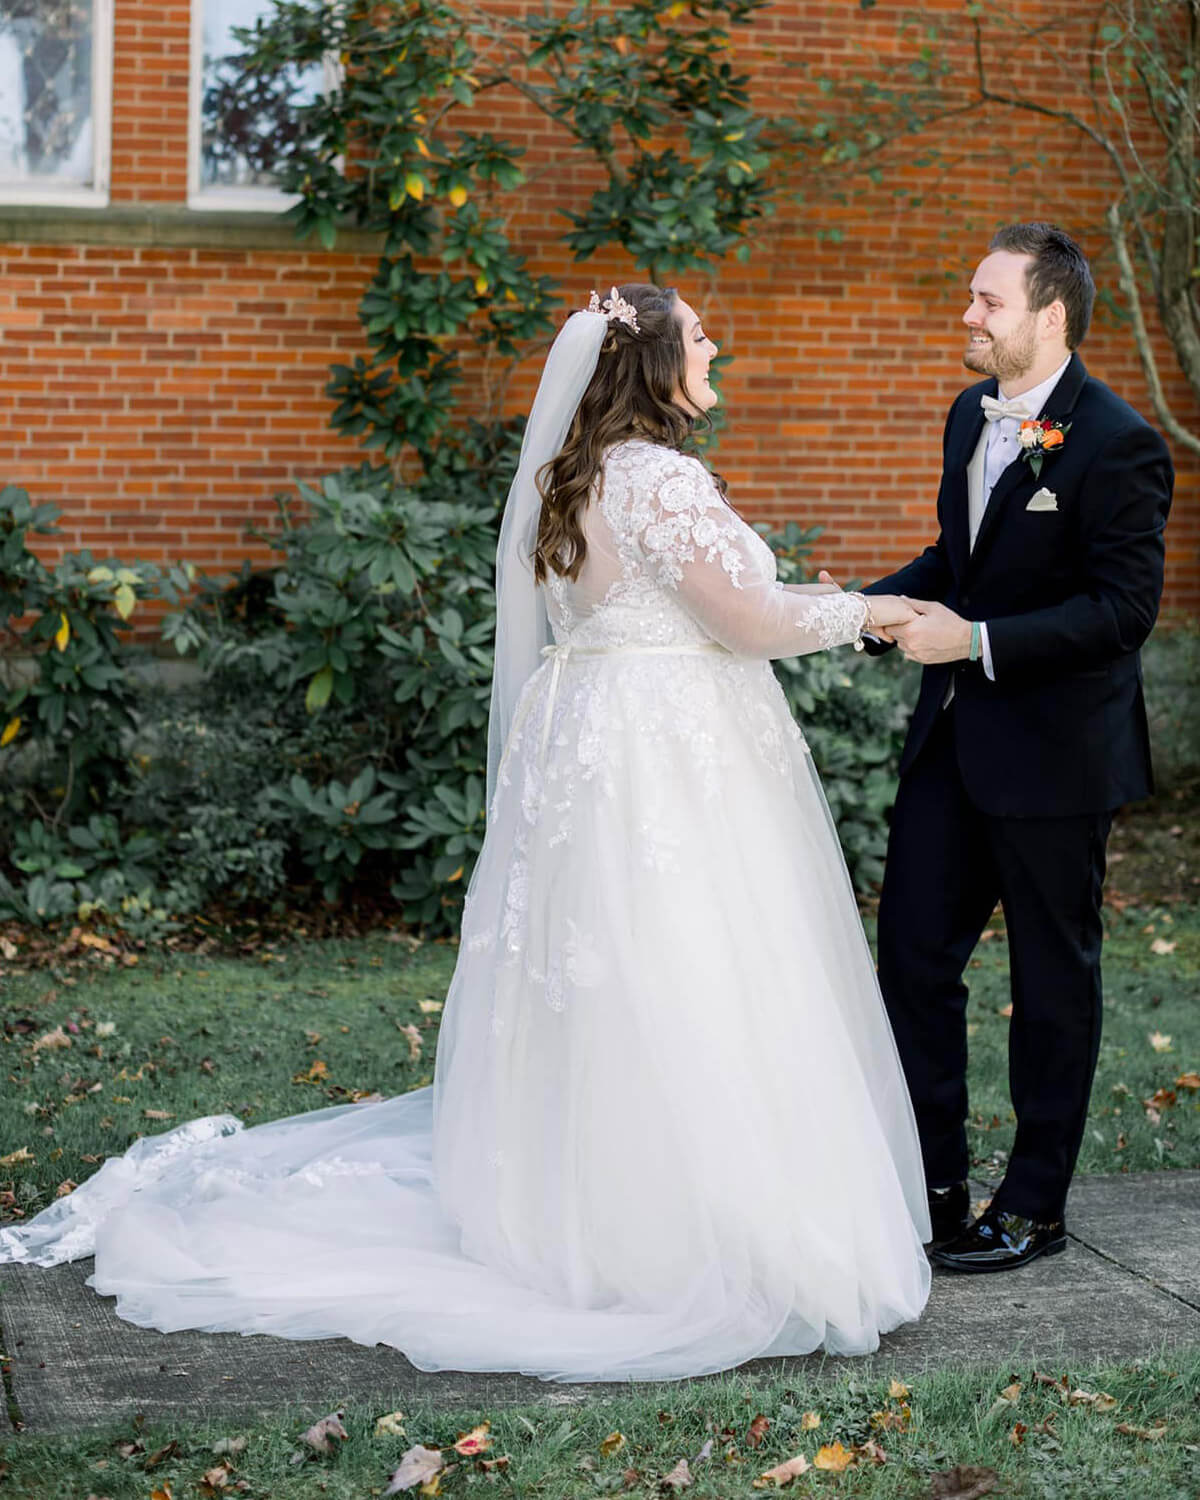 Impressive first wedding looks have us in tears!